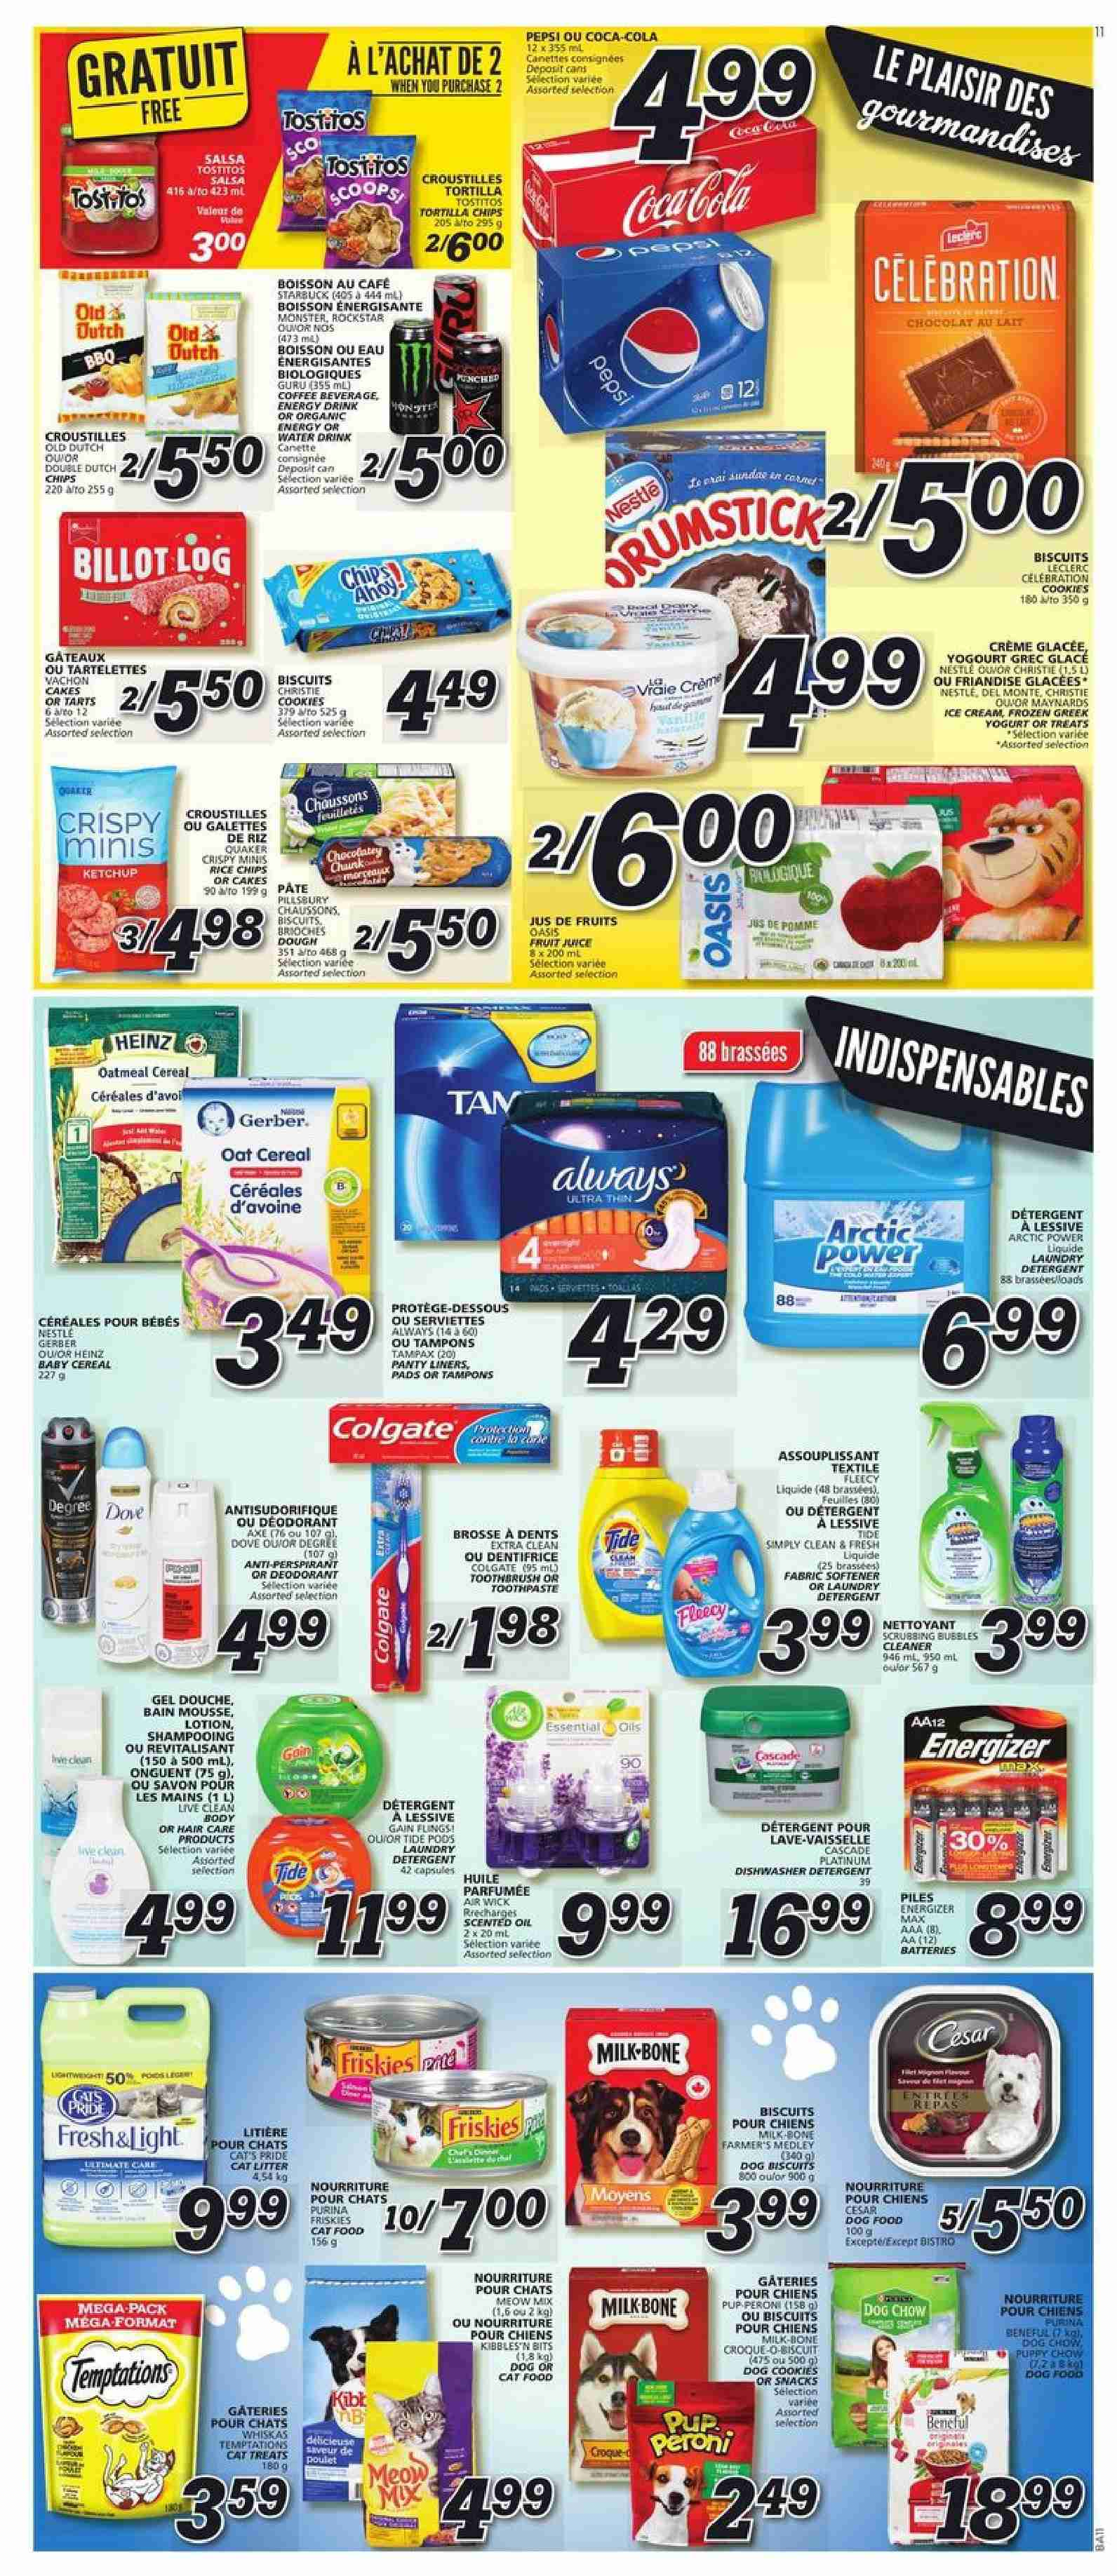 IGA Flyer  - January 17, 2019 - January 23, 2019. Page 9.